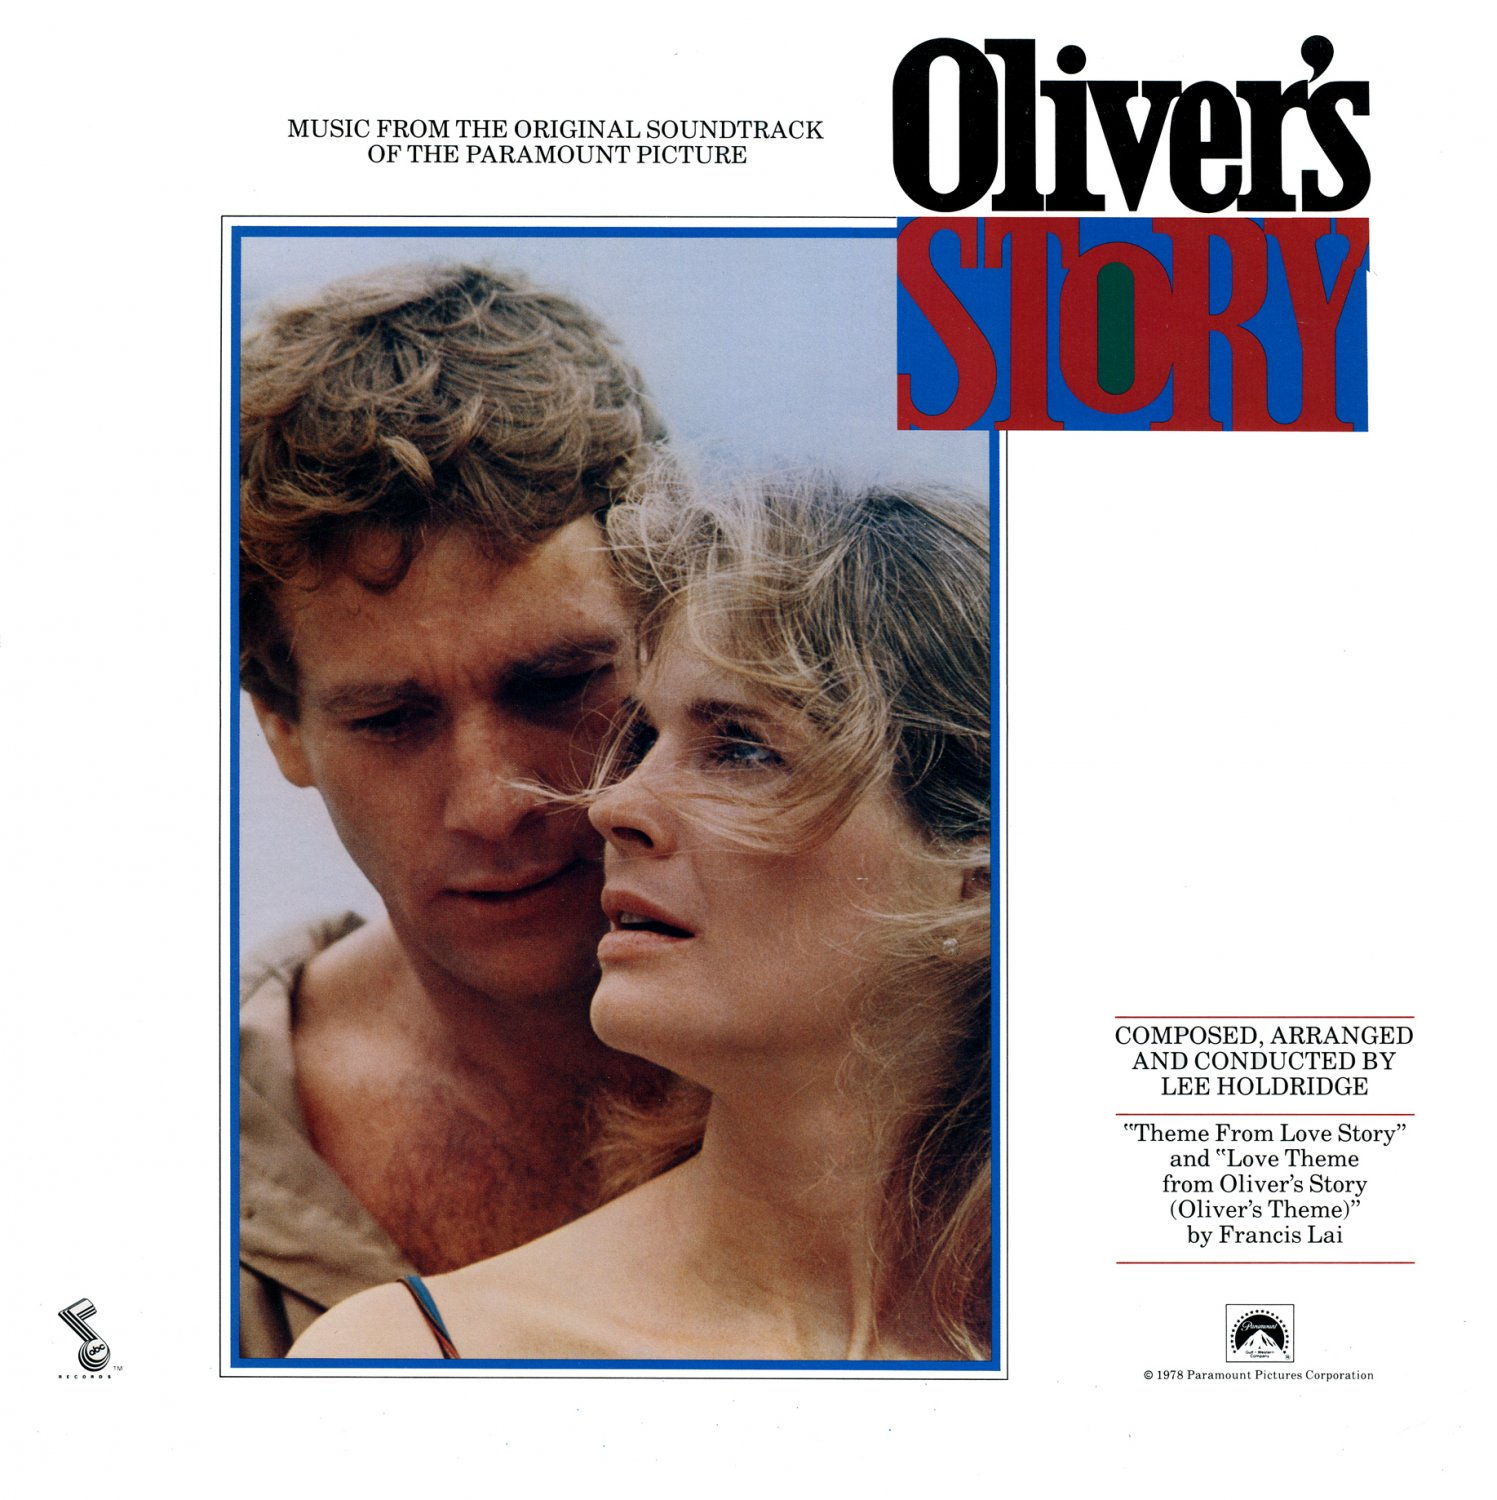 Oliver's Story - Original Soundtrack, Lee Holdridge OST LP/CD